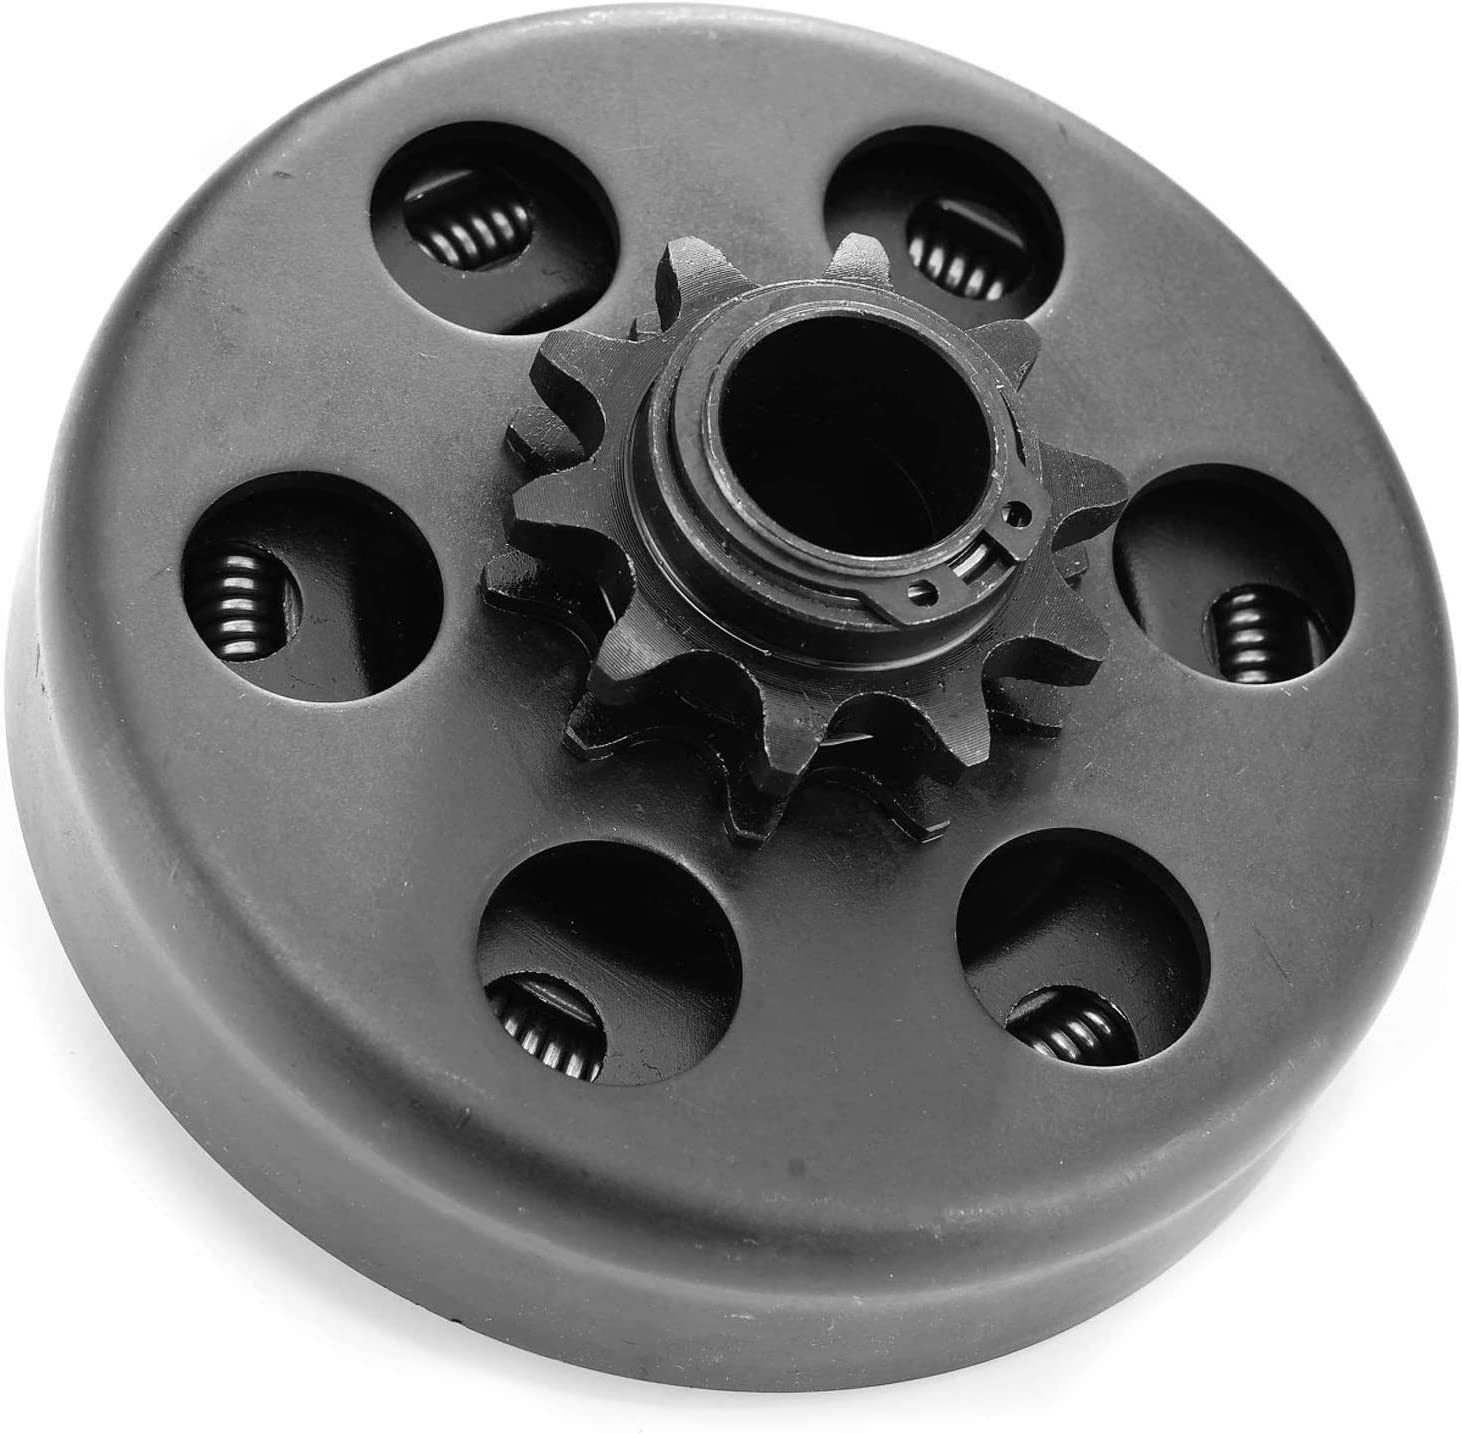 Centrifugal Clutch, Go Kart Clutch 3/4 Bore 10T for #40/41/420 Chain,Up to 6.5 HP, Perfect for Go Kart, Minibike and Fun Kart Engine 3/4 Bar